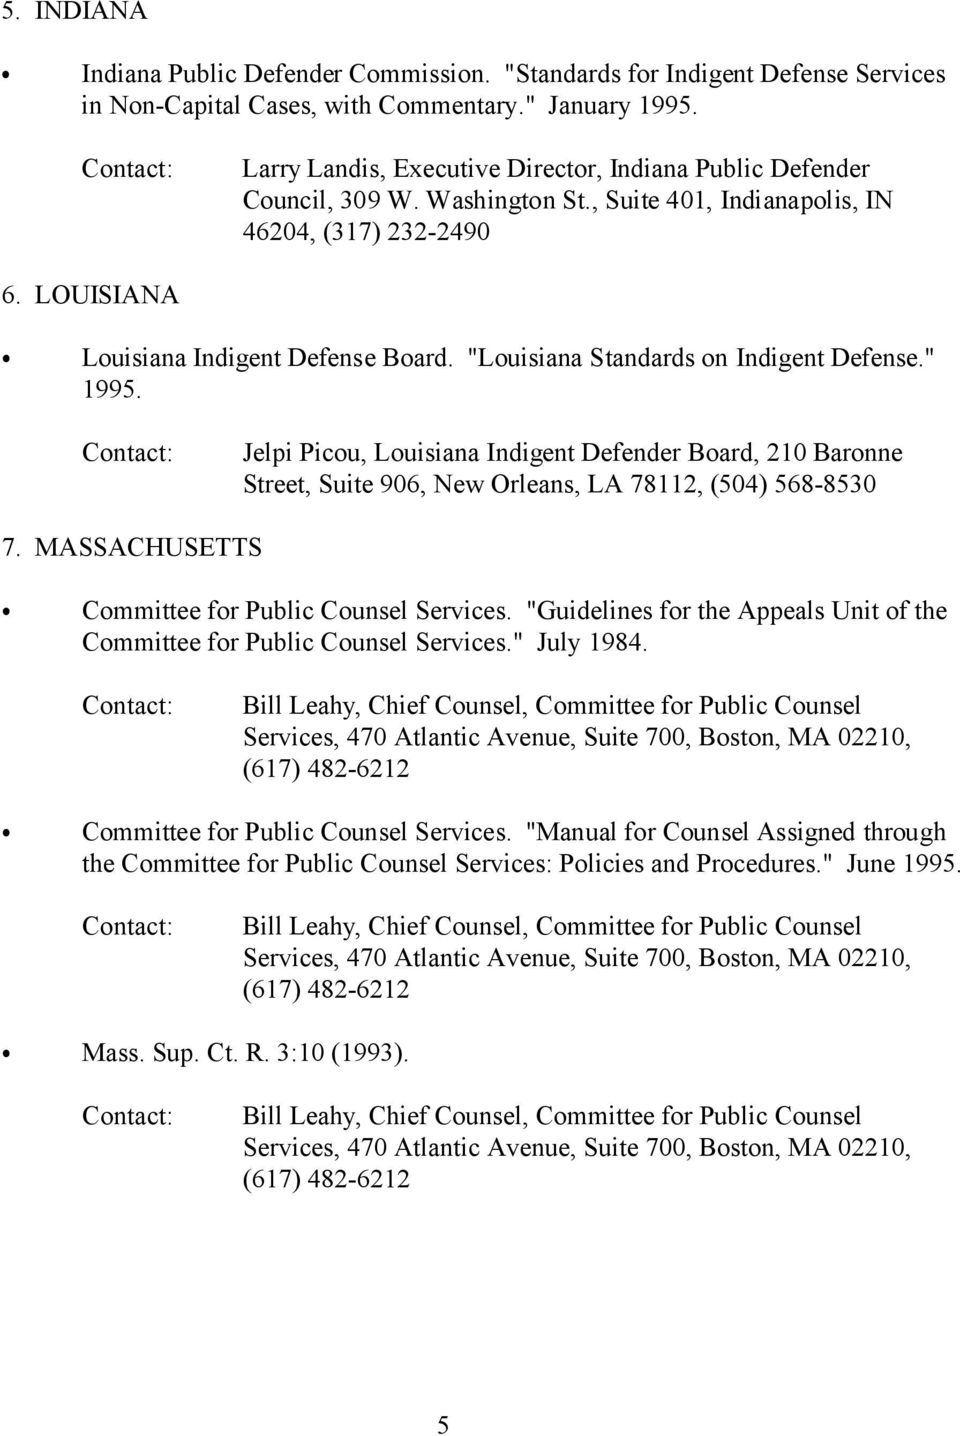 """Louisiana Standards on Indigent Defense."" 1995. Jelpi Picou, Louisiana Indigent Defender Board, 210 Baronne Street, Suite 906, New Orleans, LA 78112, (504) 568-8530 7."